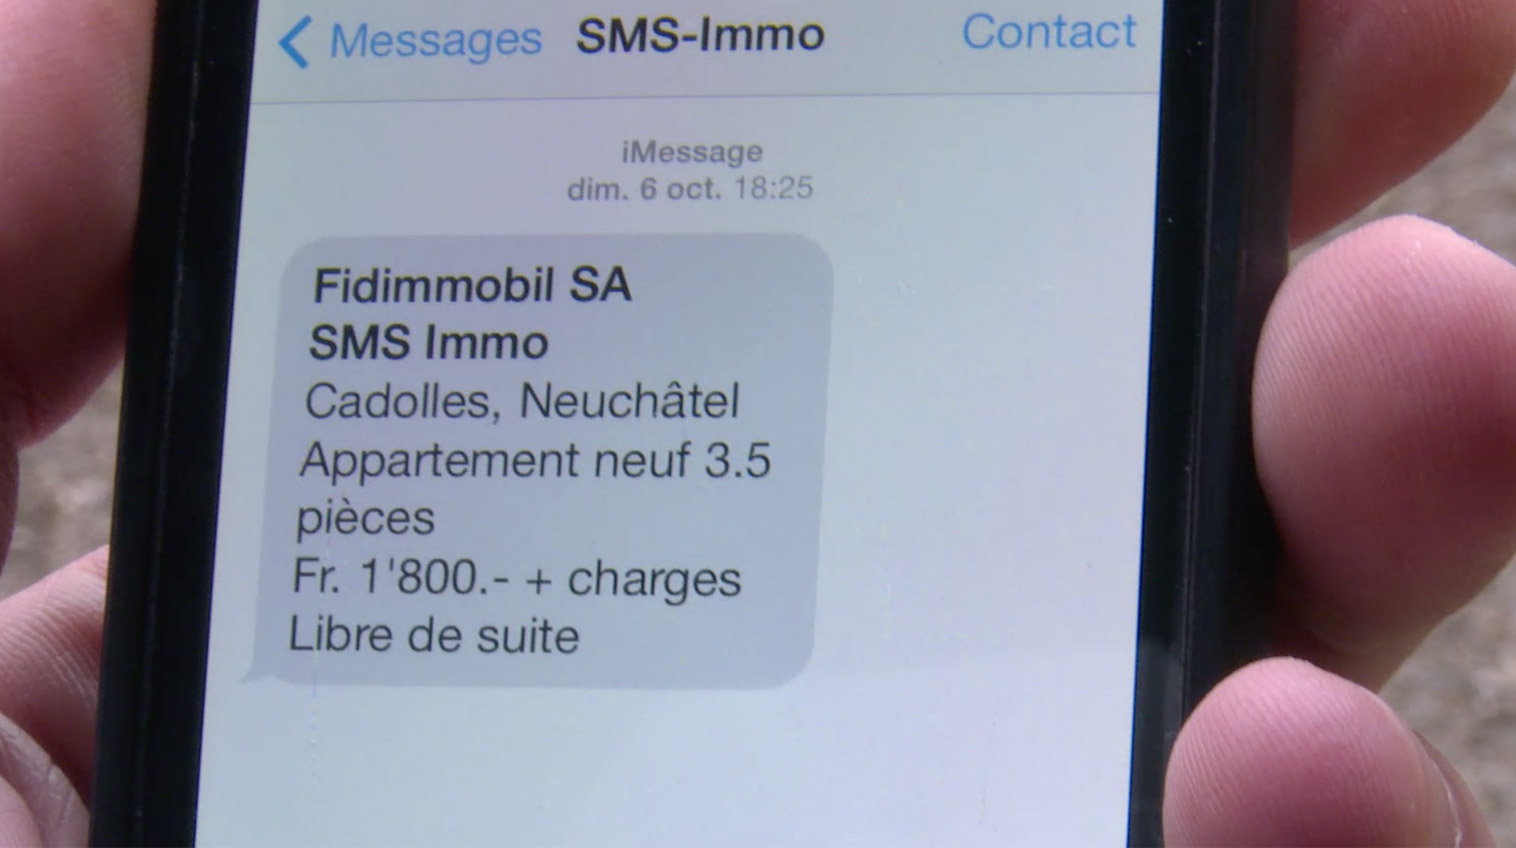 SMS-Immo